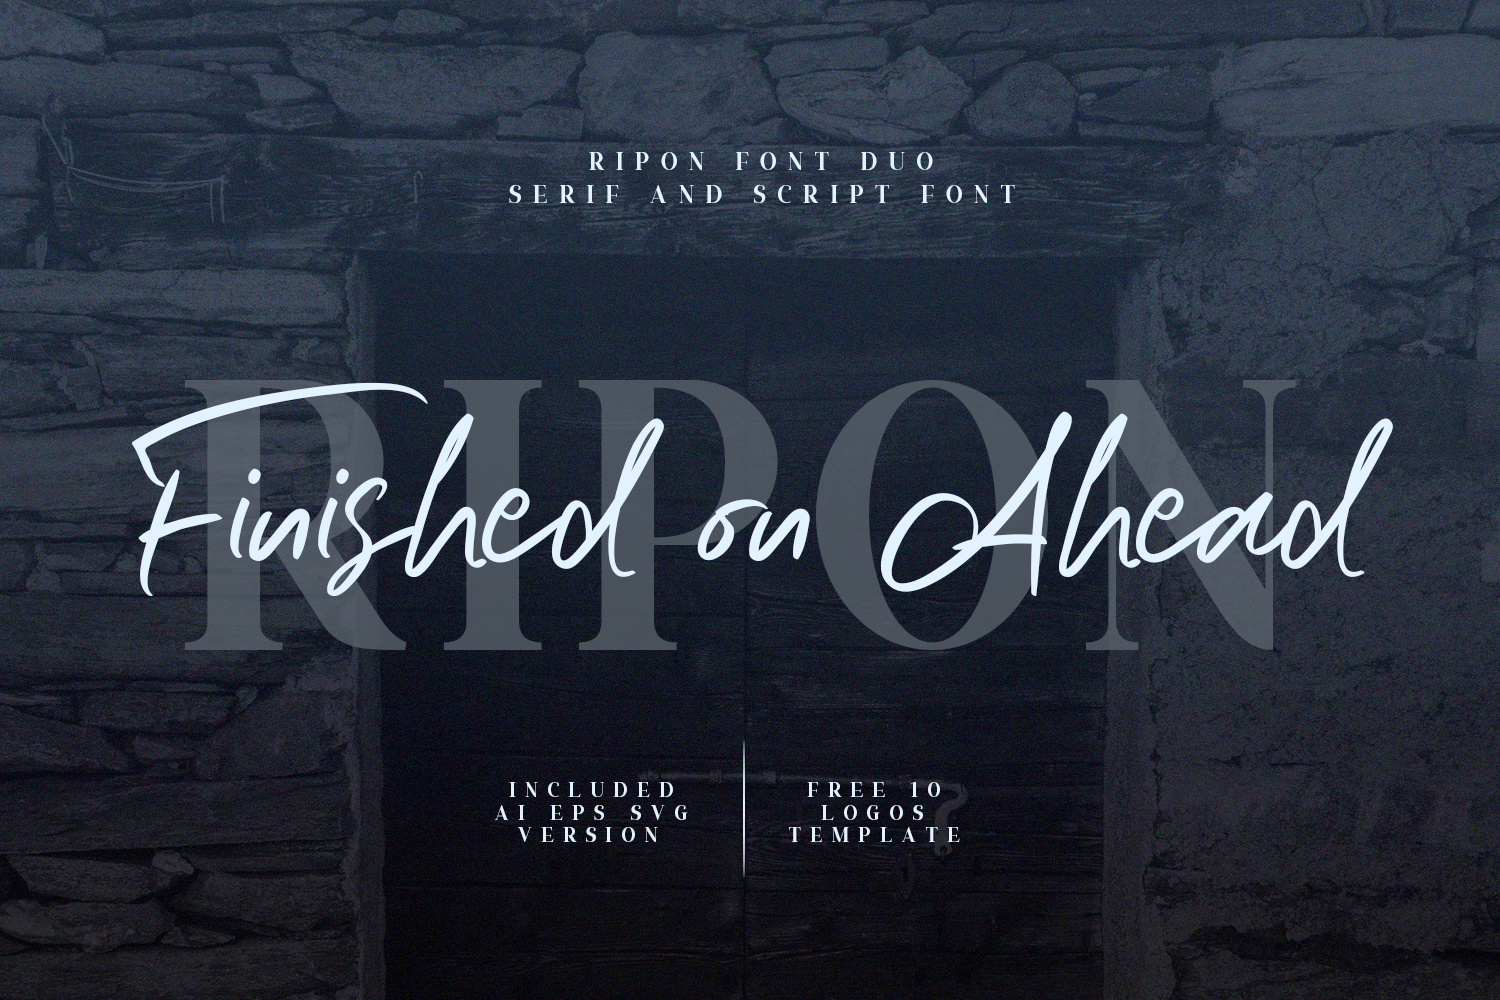 Download Free Ripon Duo Font By Sameeh Media Creative Fabrica for Cricut Explore, Silhouette and other cutting machines.